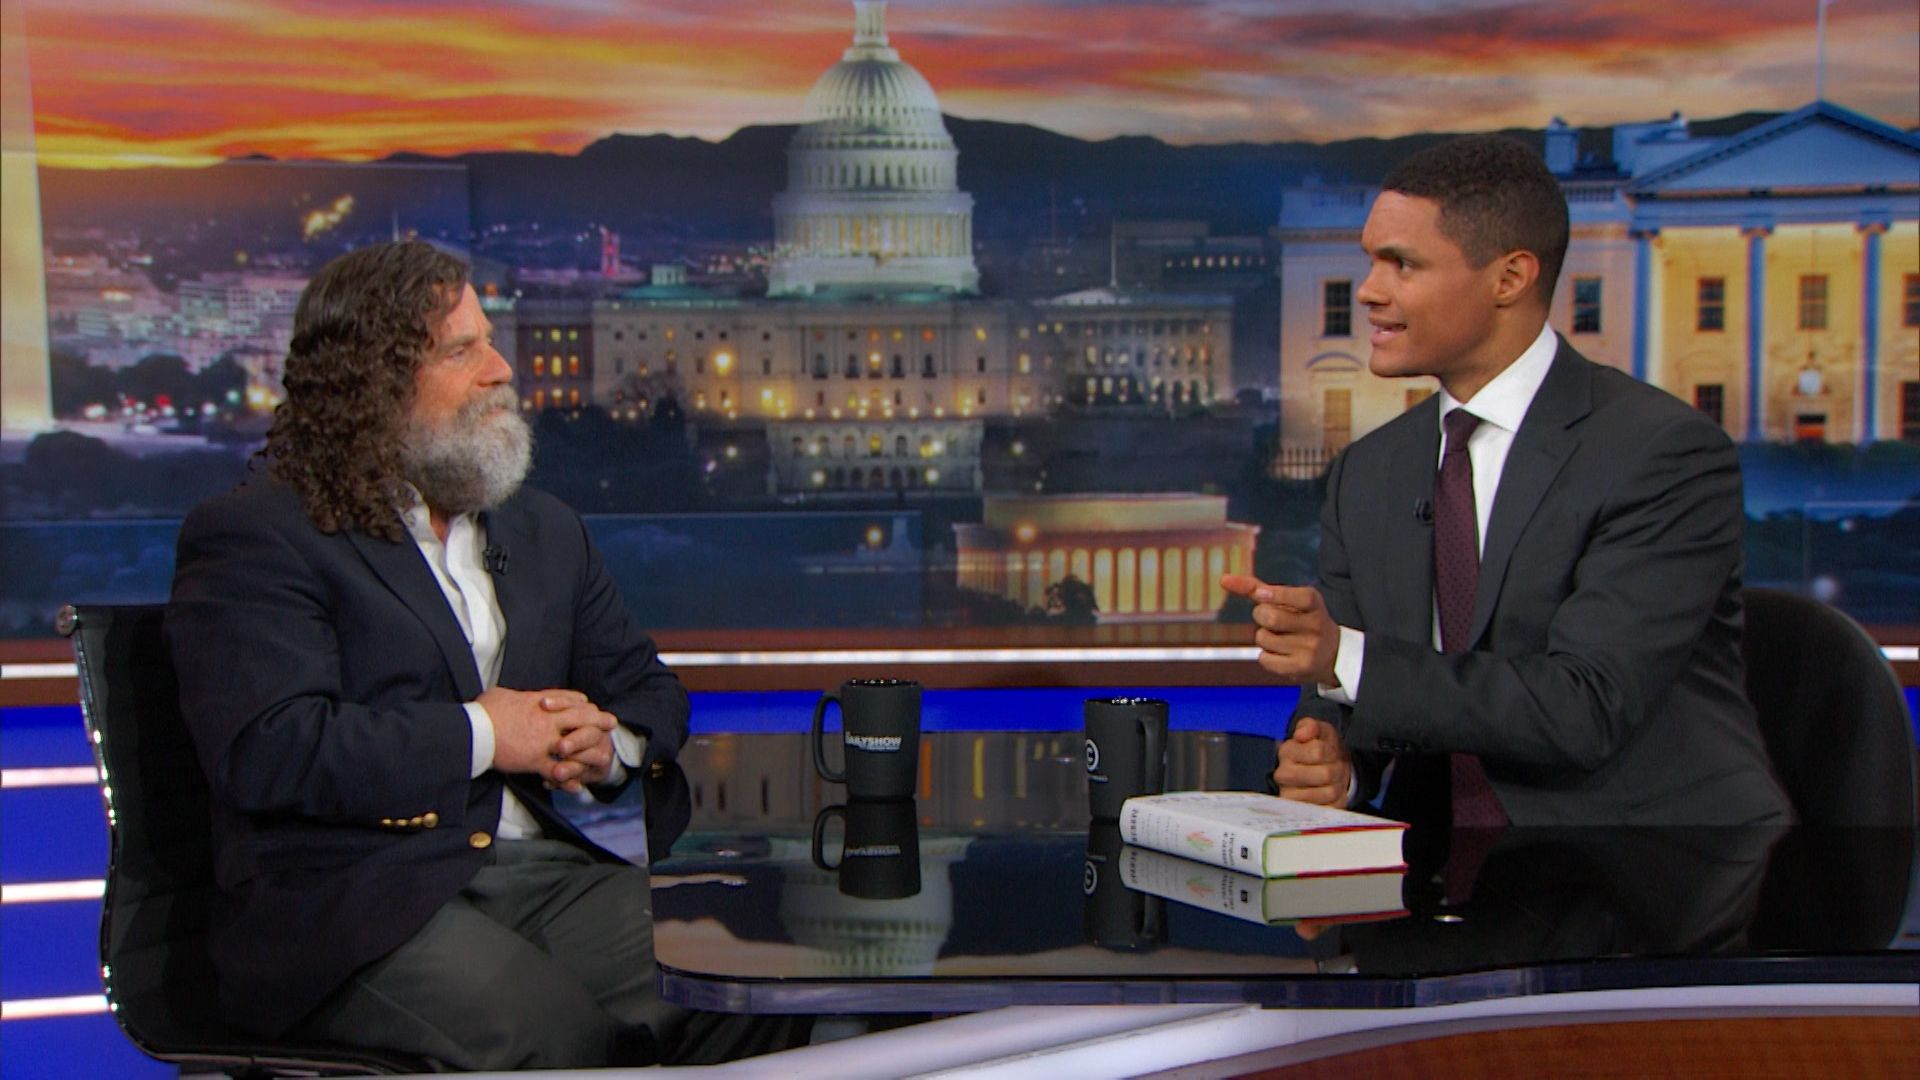 Robert Sapolsky How Science Influences Culture And Politics In